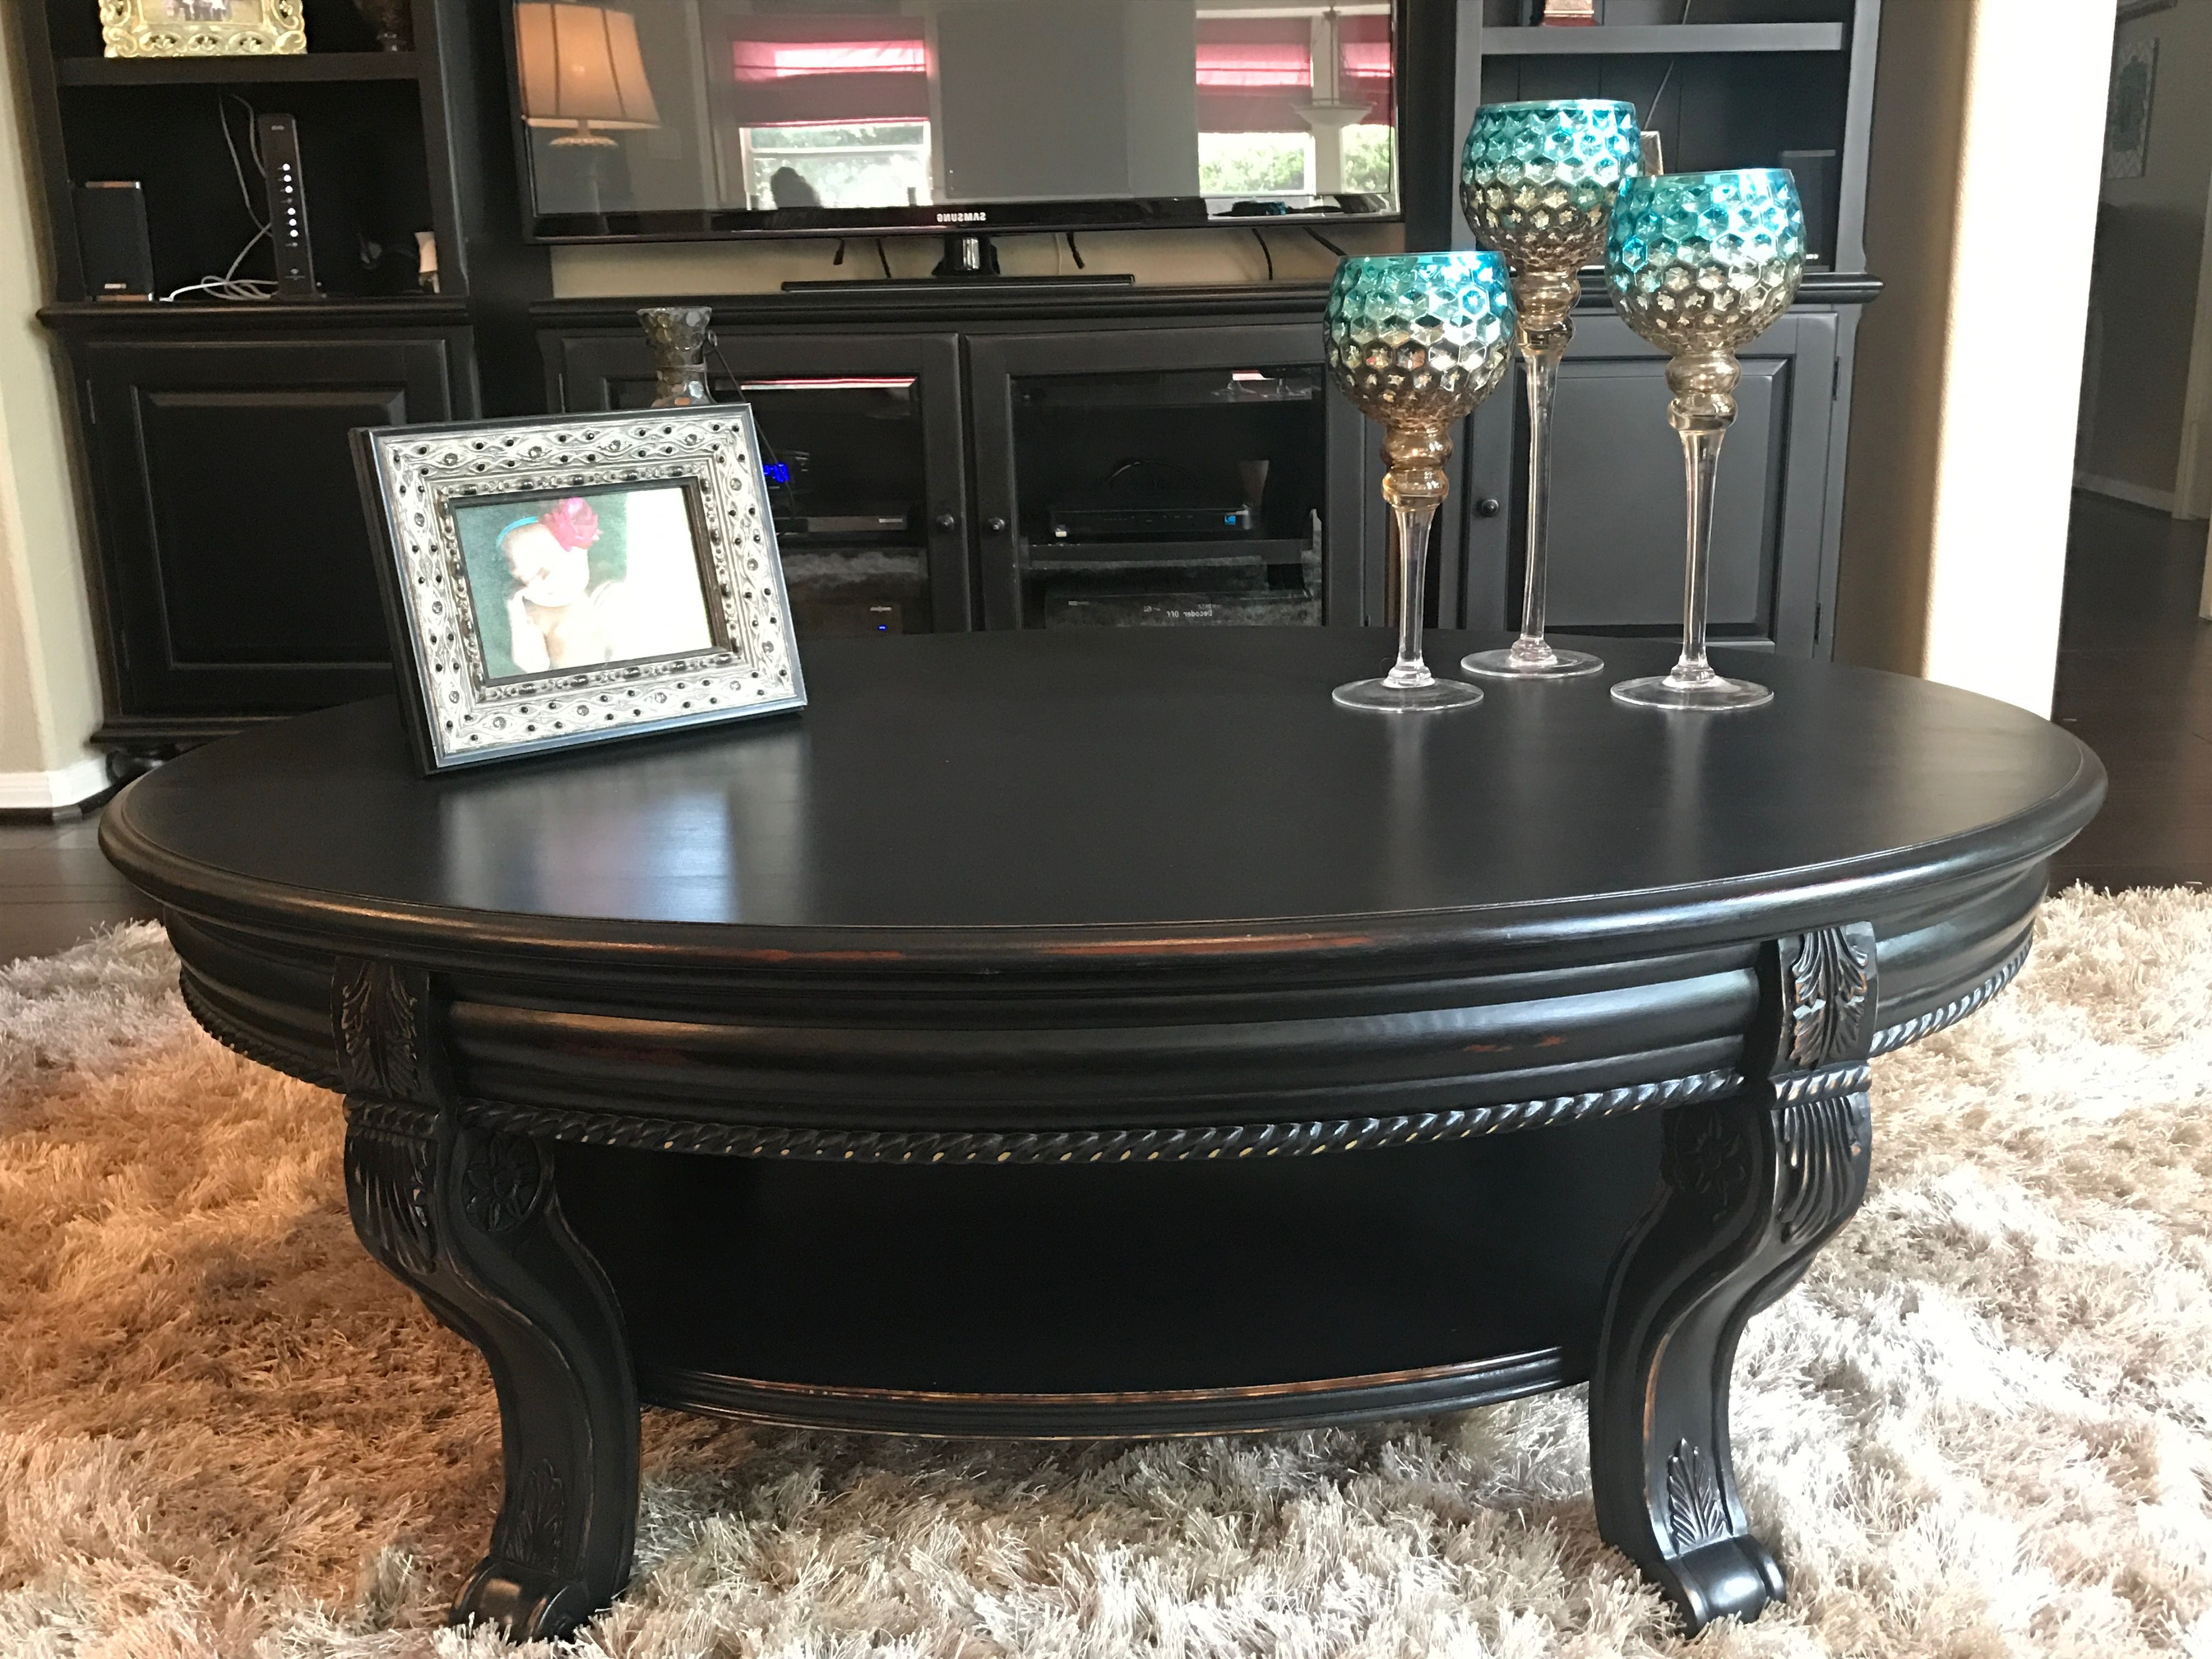 Coffee Table Refinished In Valspar Black Boots And Distressed Within Most Popular Donnell Coffee Tables (View 12 of 20)